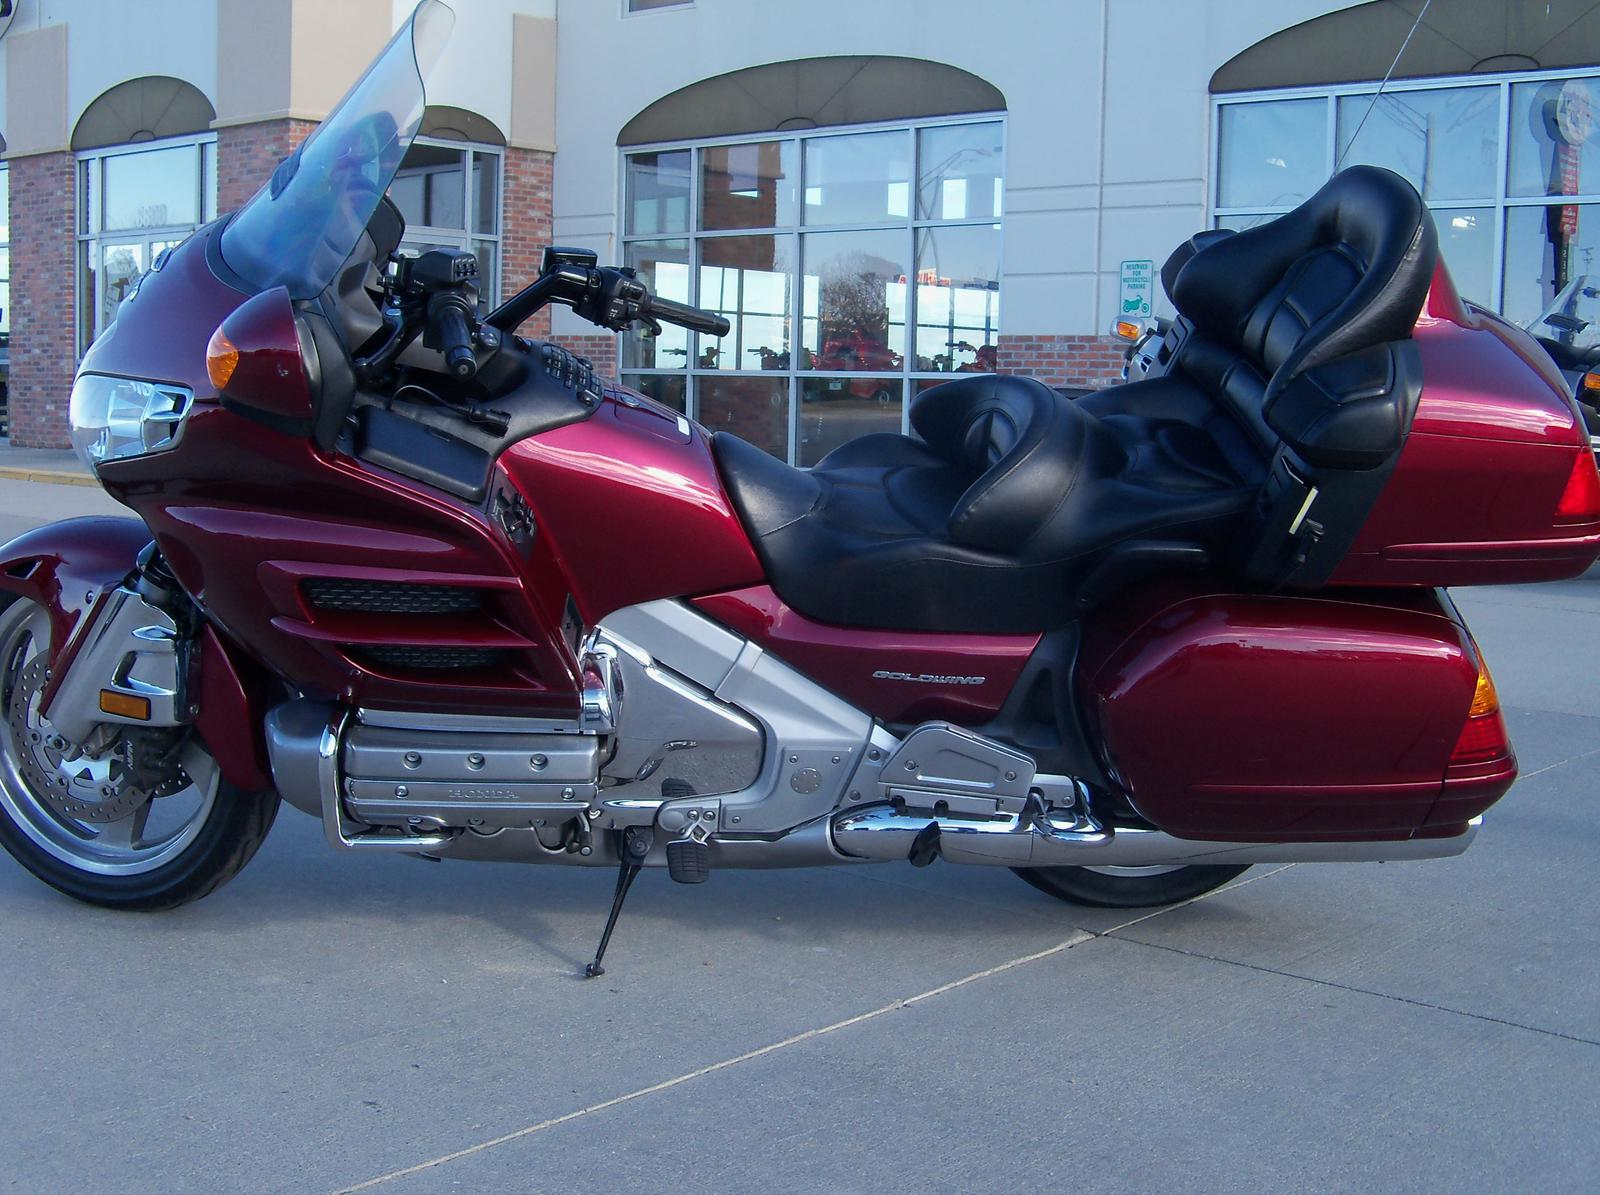 2005 honda 1800 goldwing gl1800 motorcycle from lincoln ne today sale 15 199. Black Bedroom Furniture Sets. Home Design Ideas